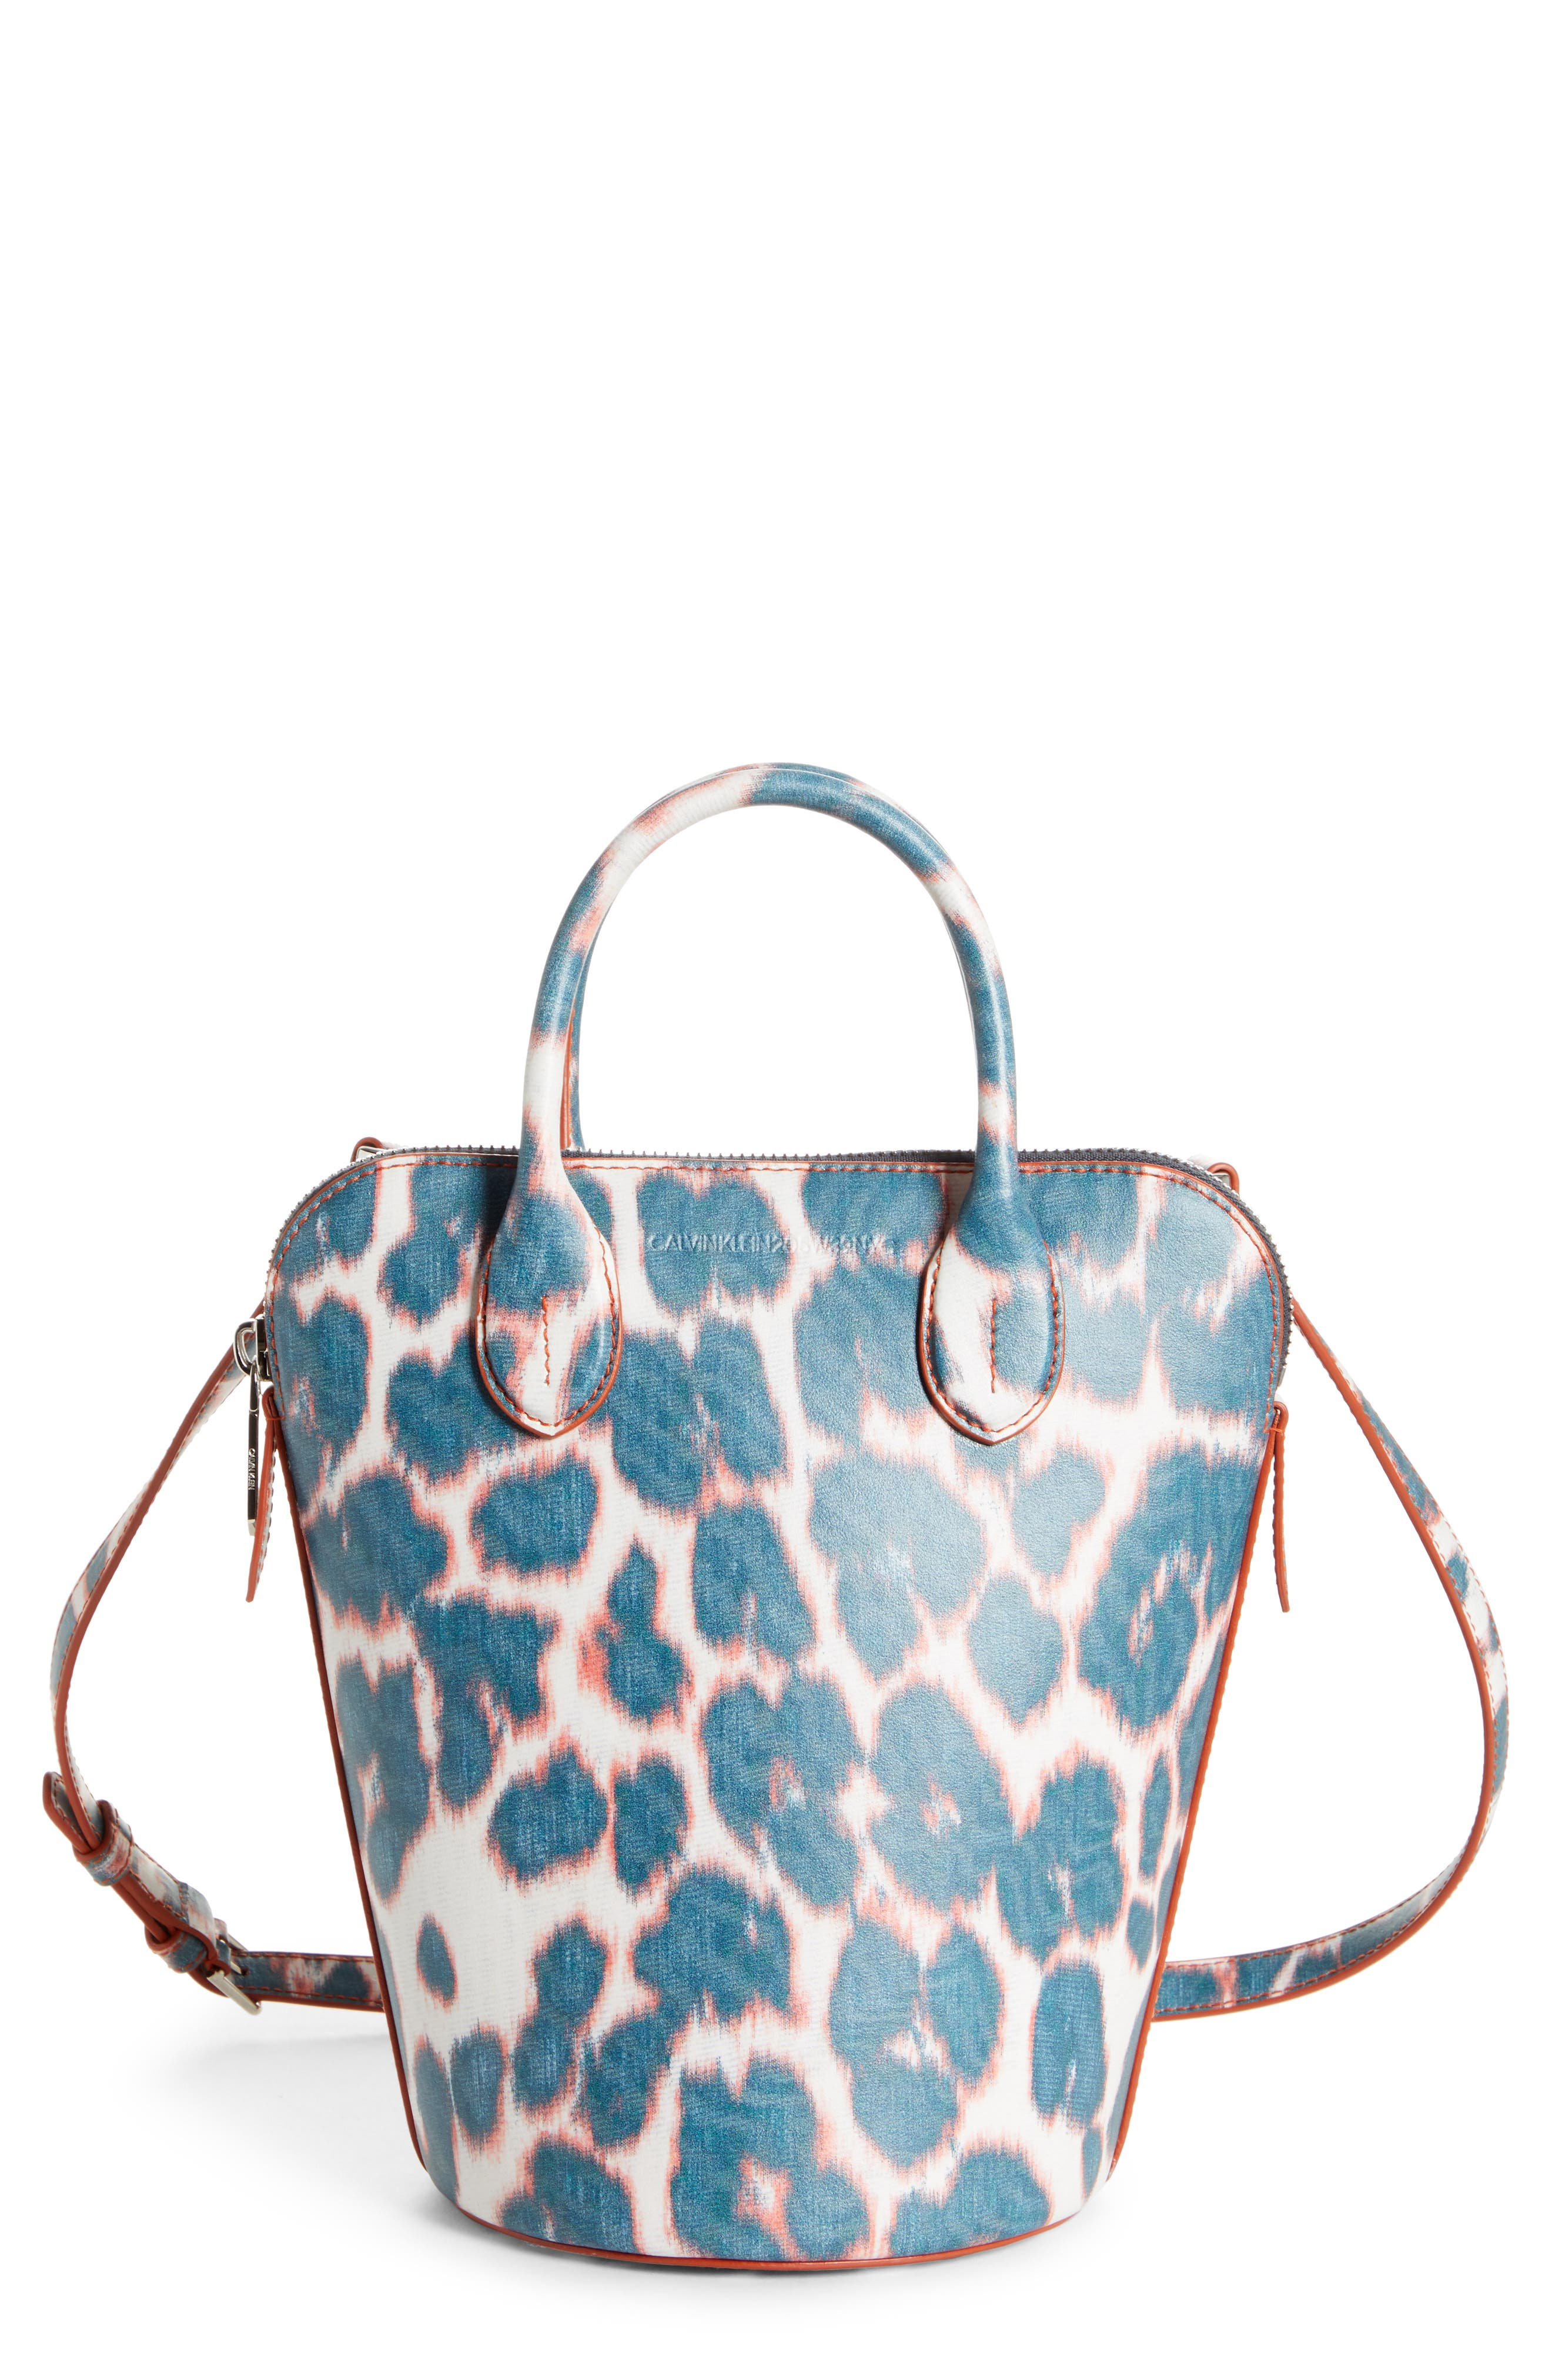 CALVIN KLEIN 205W39NYC, Mini Dalton Calfskin Bucket Bag, Main thumbnail 1, color, ELECTRIC PANTHER